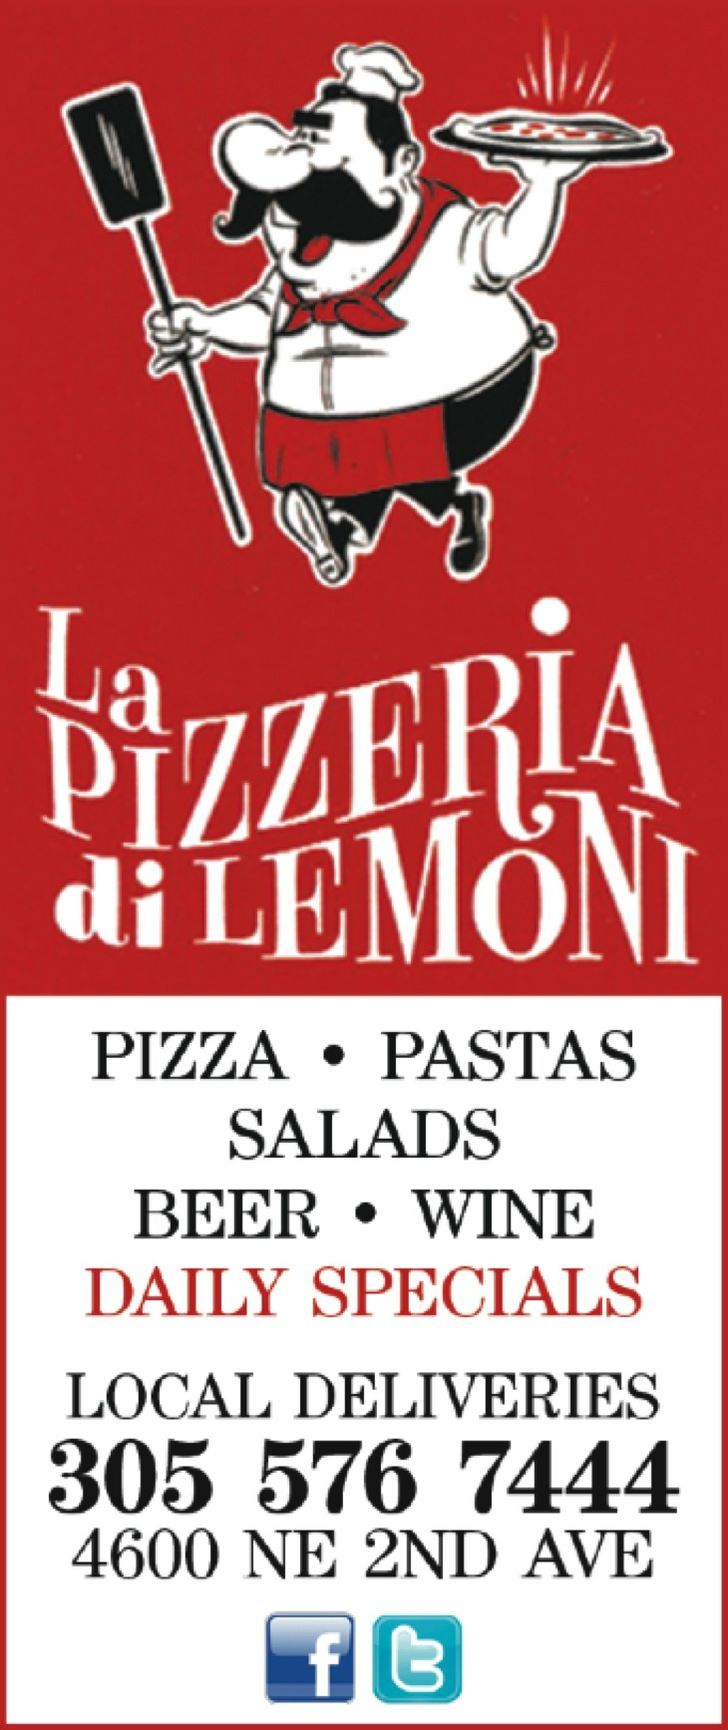 La Pizzeria di Lemoni